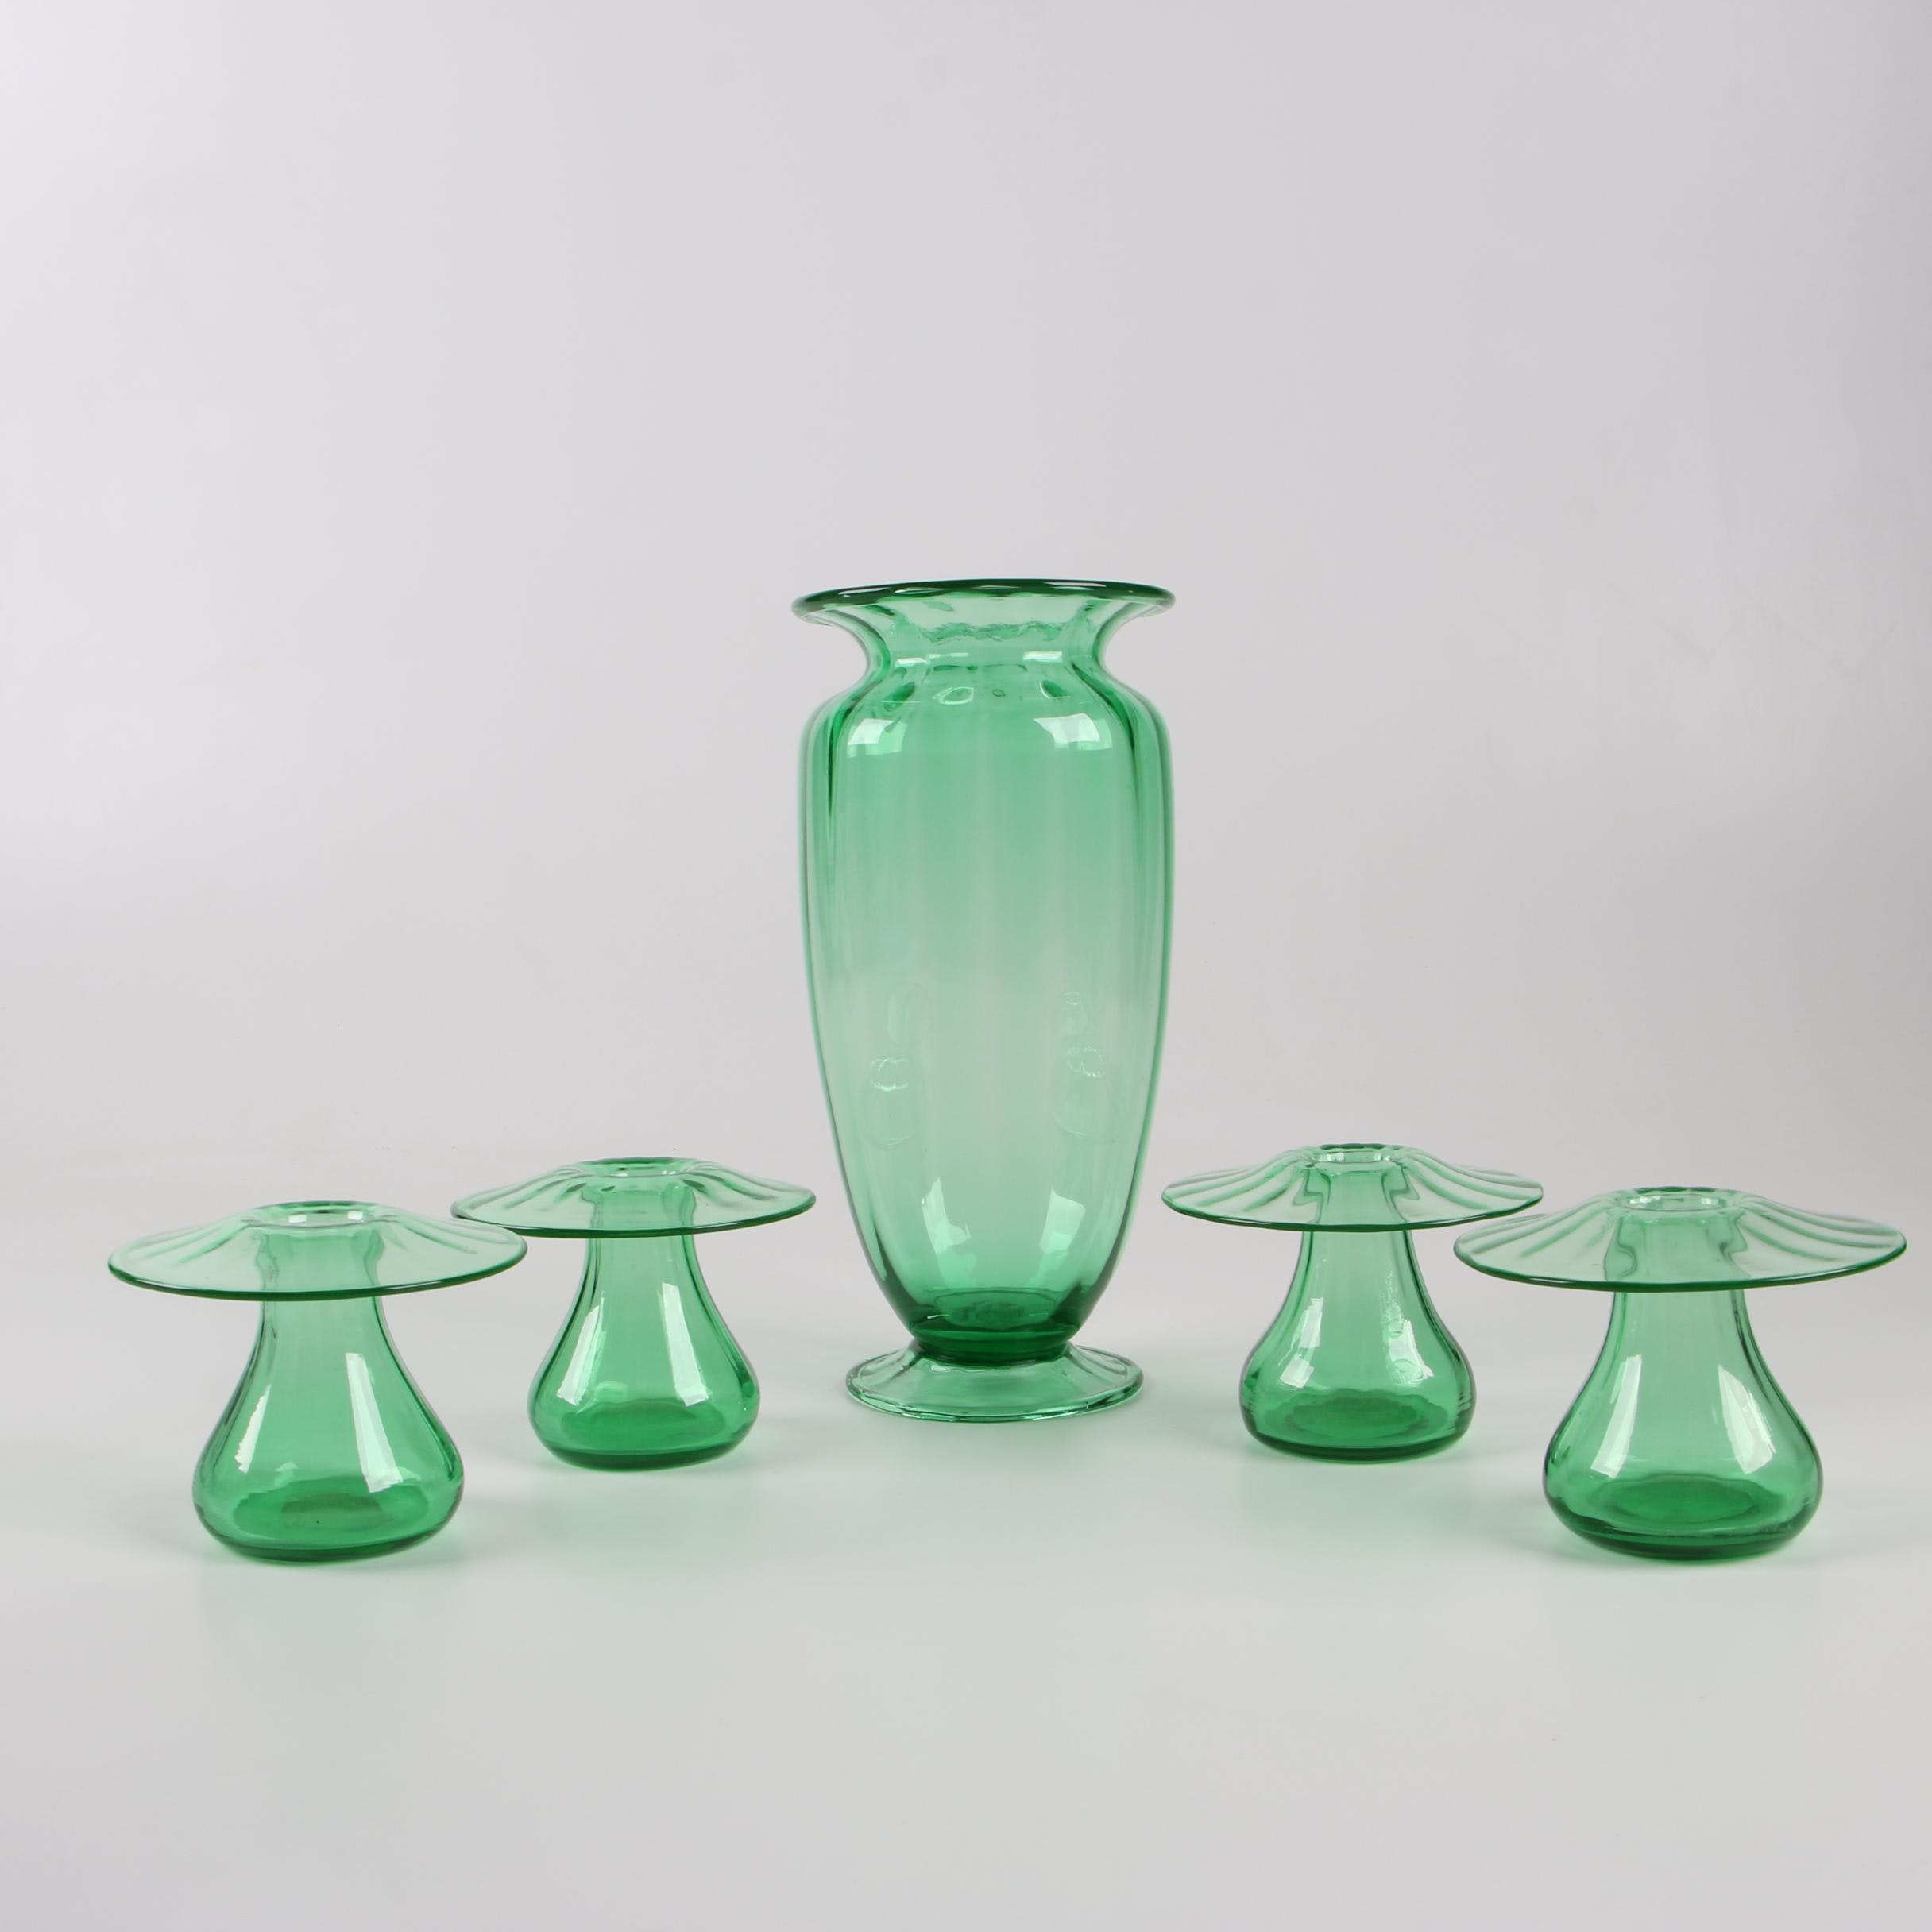 Steuben Pomona Green Art Glass Vases, Early 20th Century